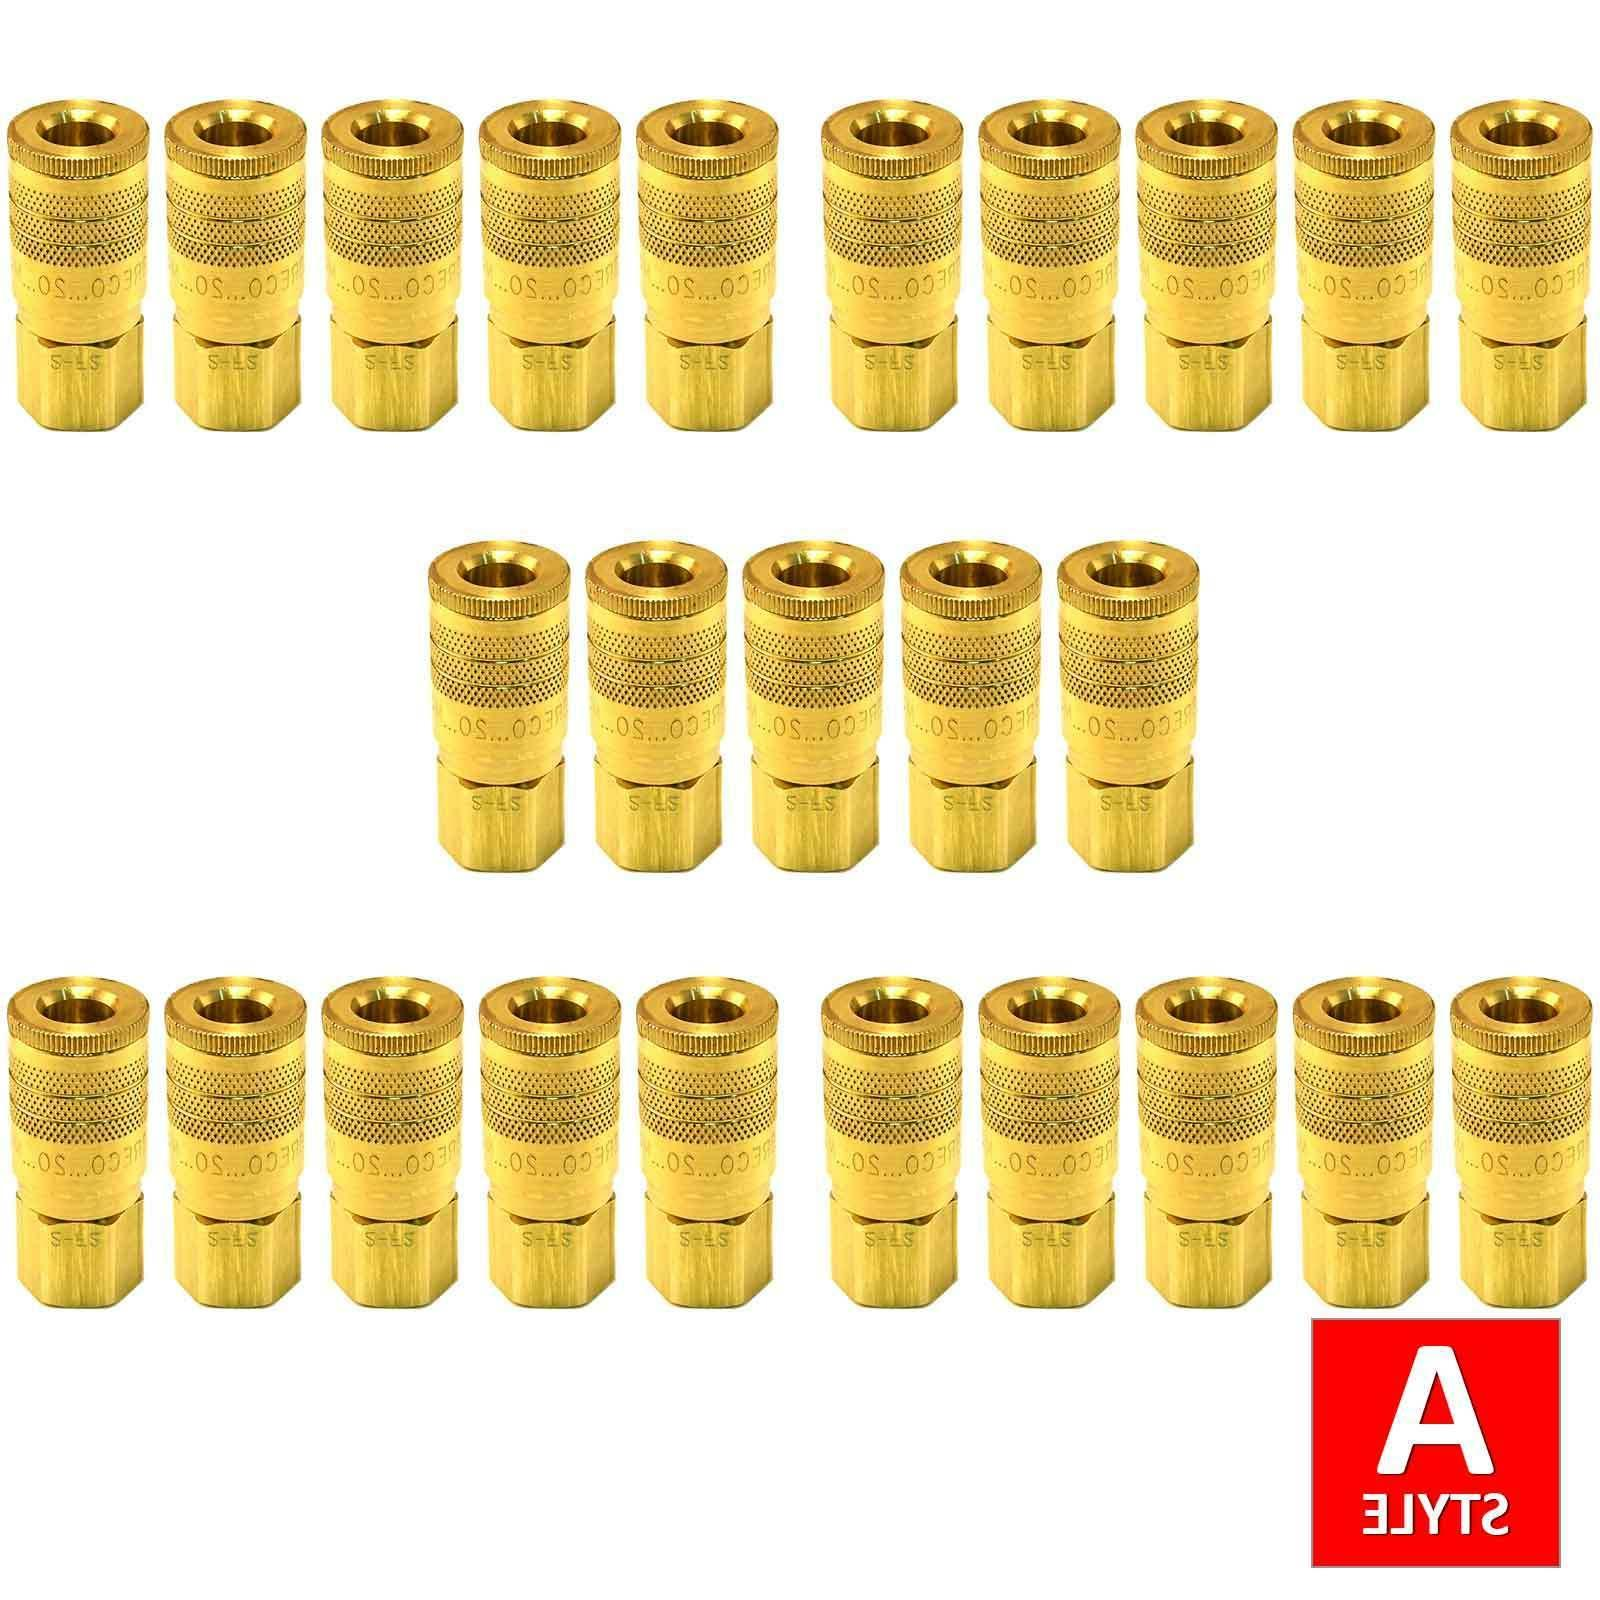 1 4 a style air hose fittings